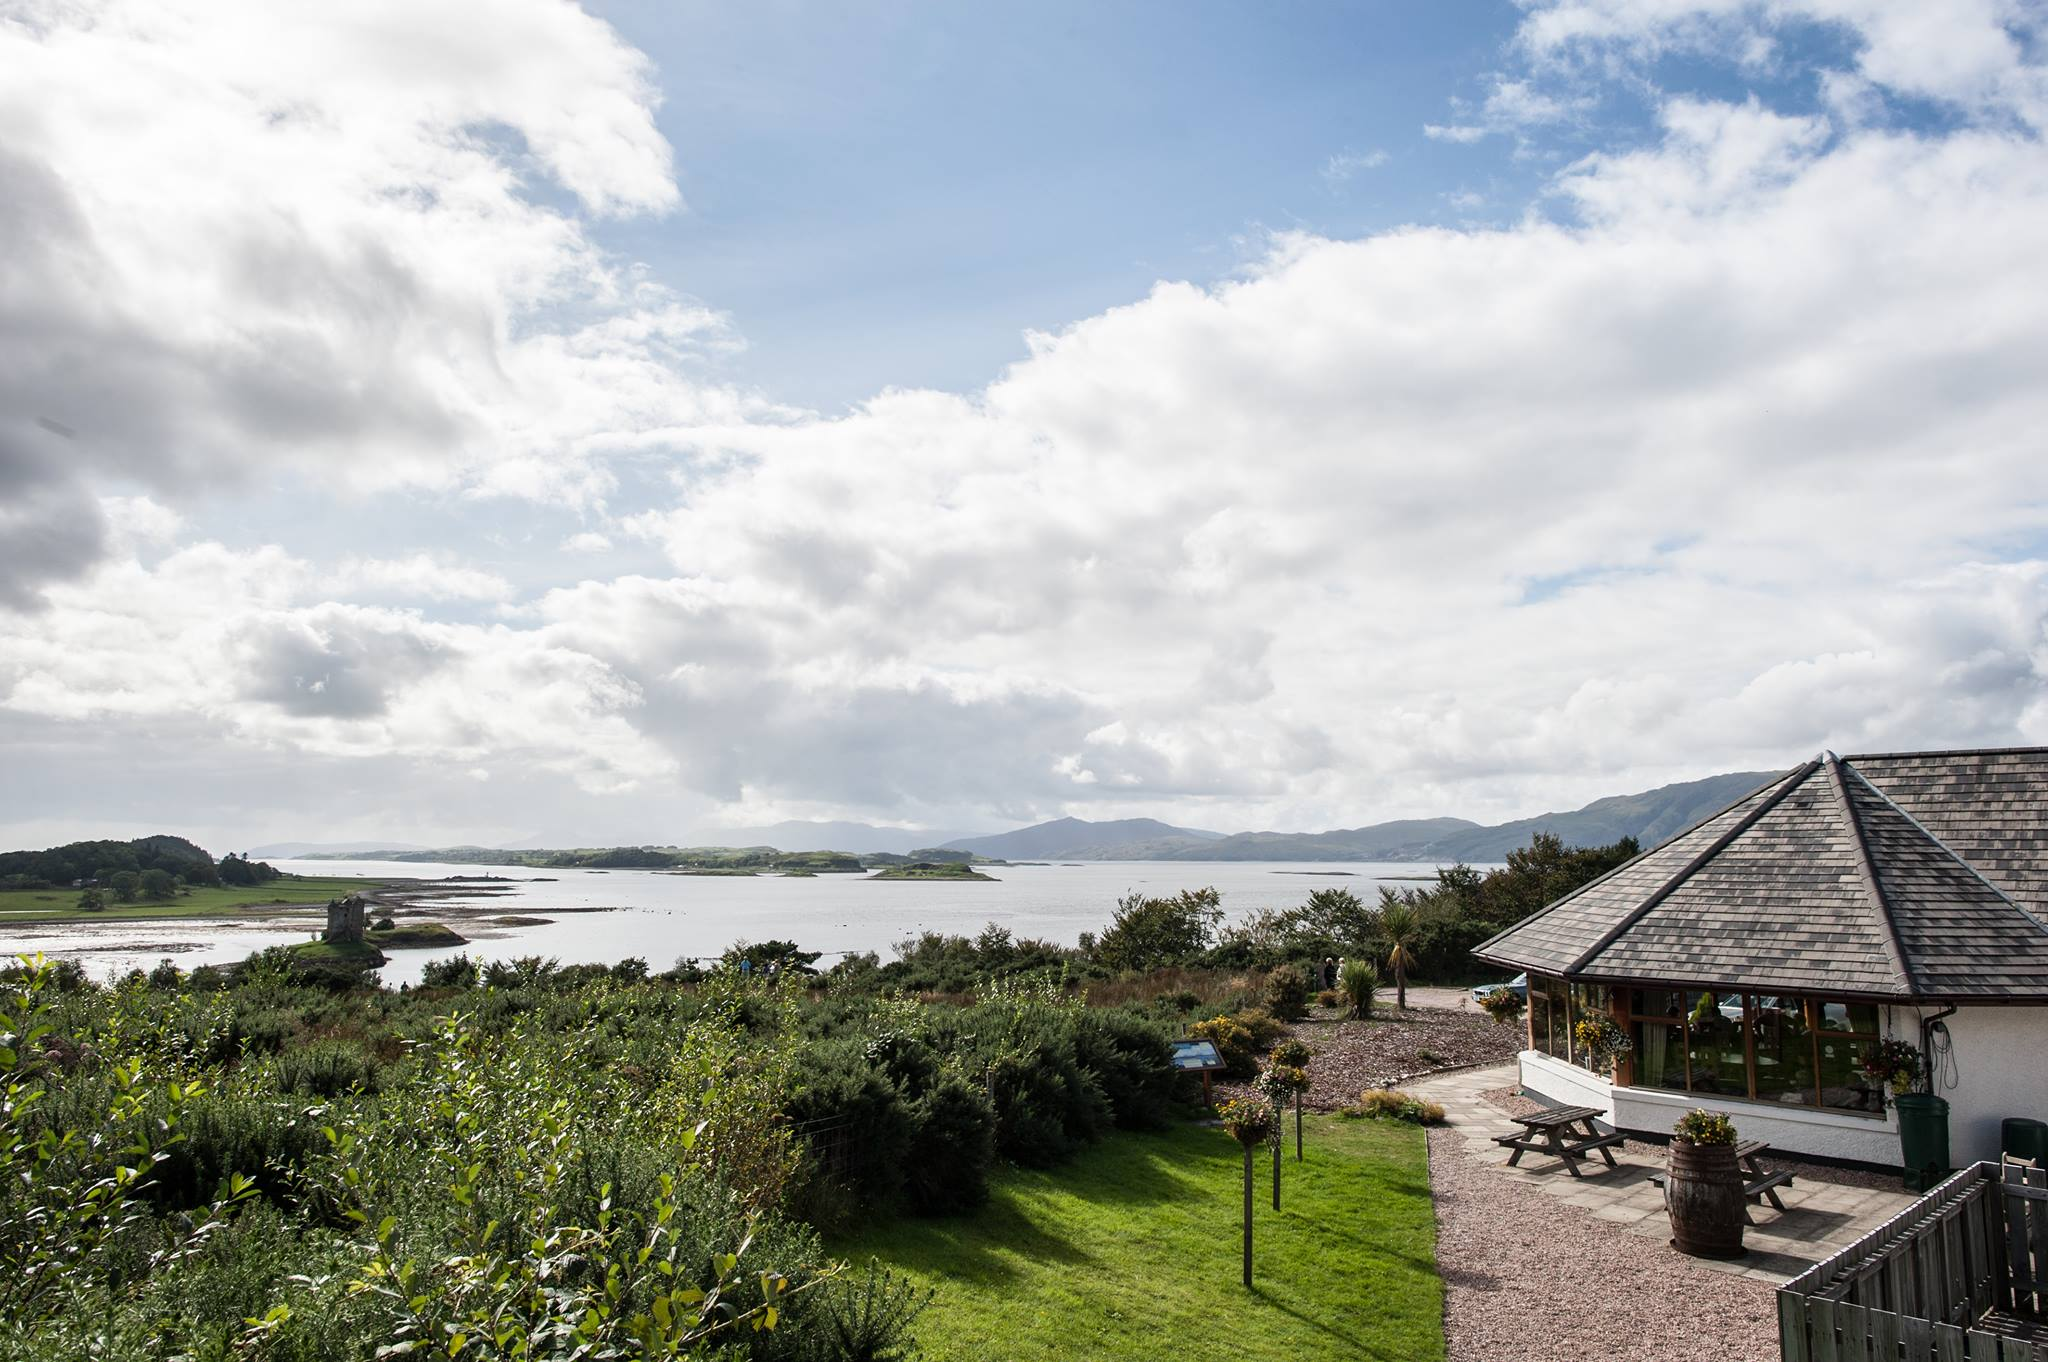 Castle Stalker View Cafe and Gift Shop